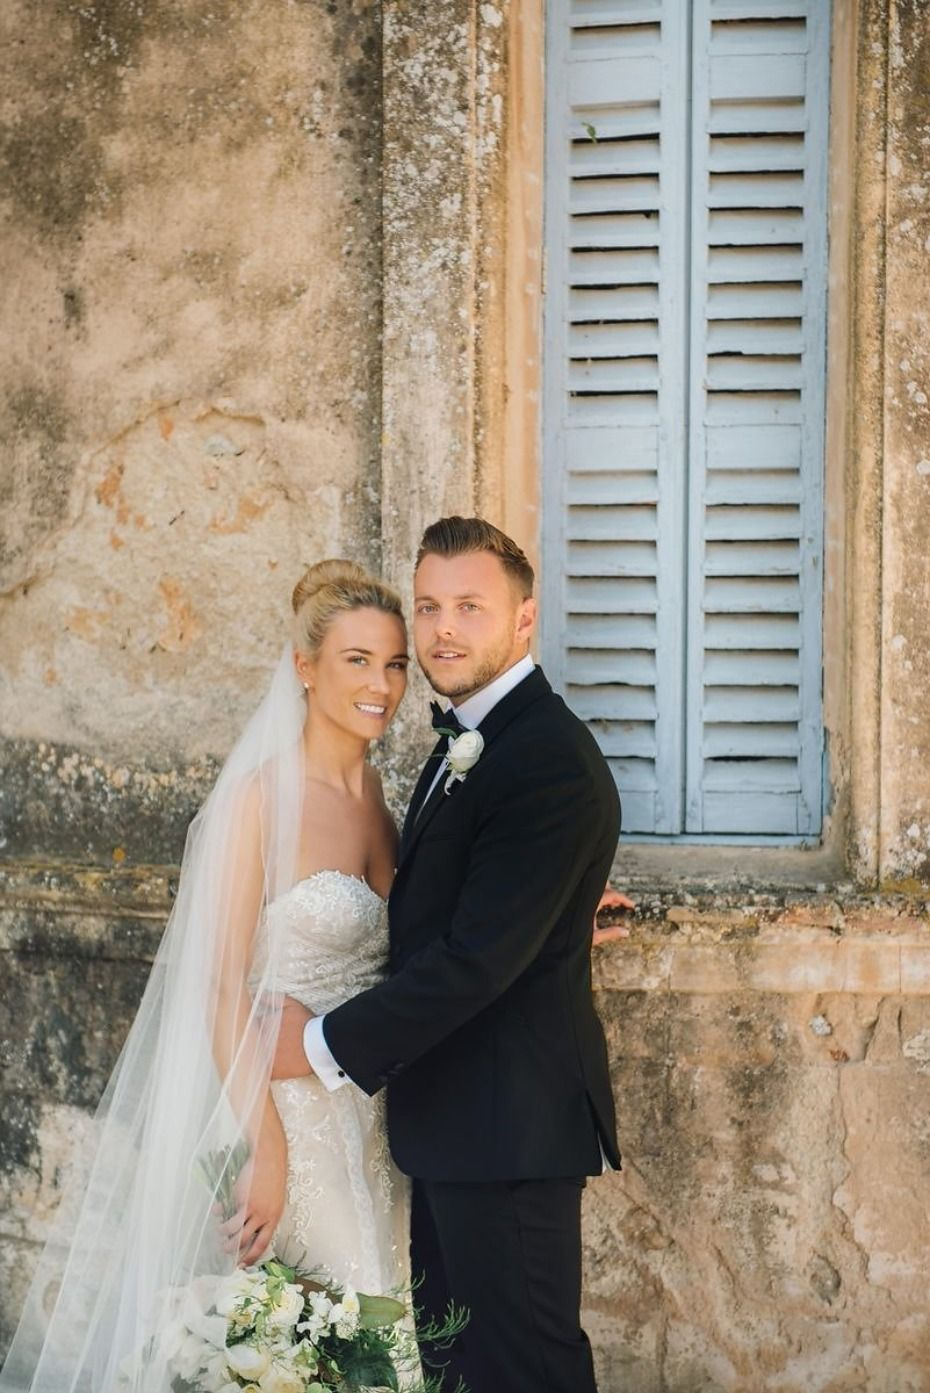 Elegant Summertime Wedding At A French Cau